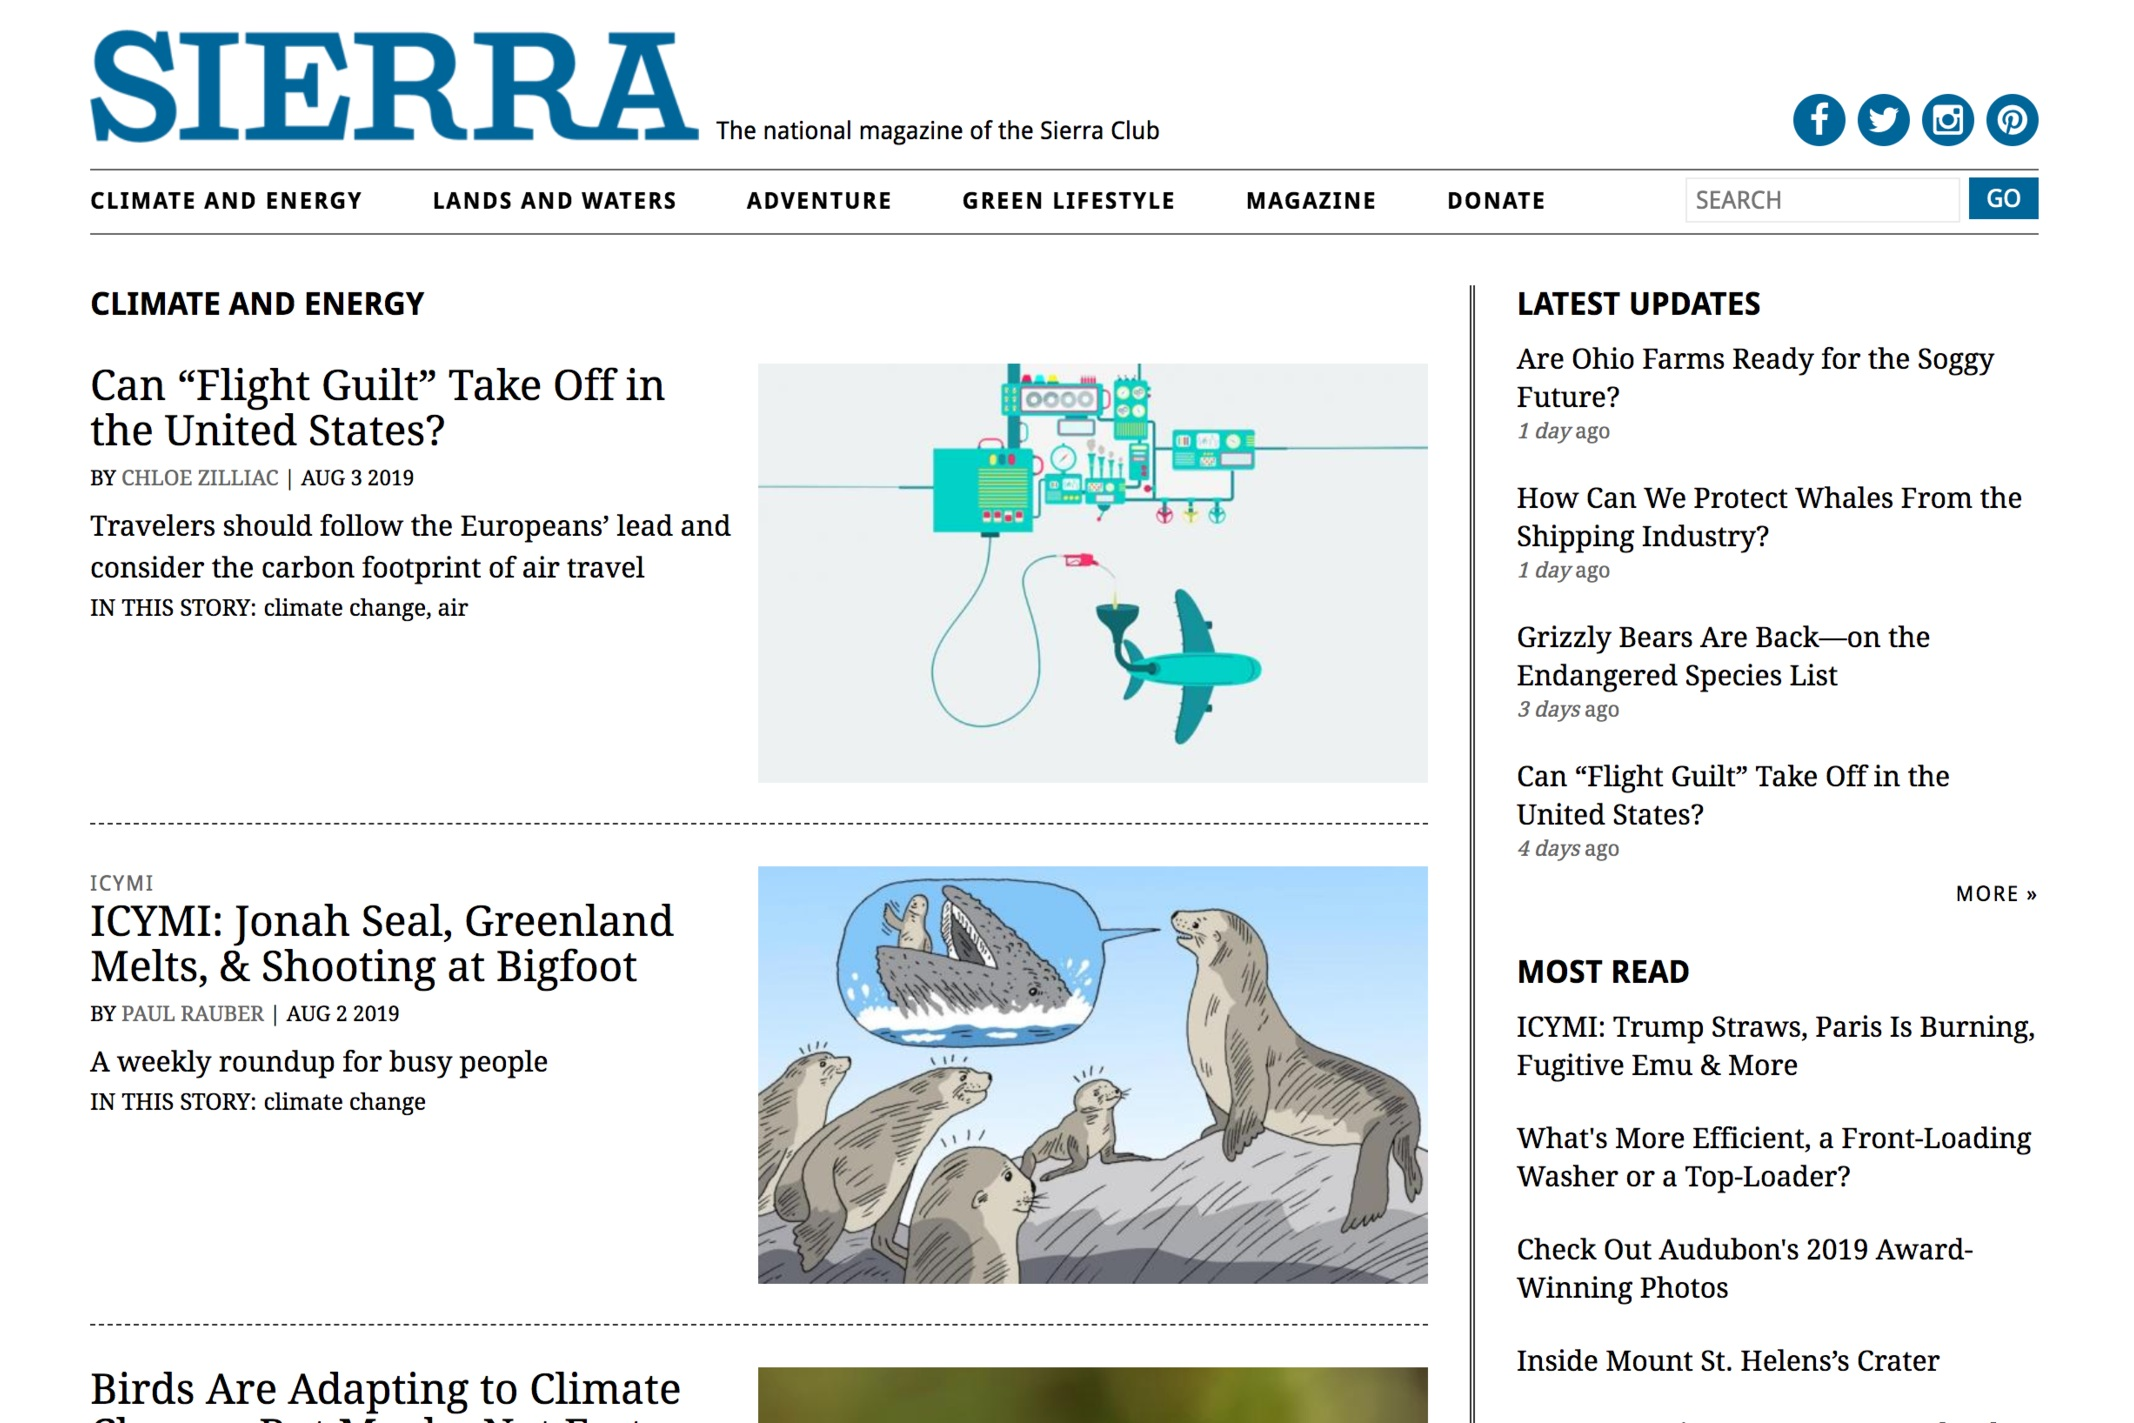 - Sierra Club's Climate and Energy Webpage